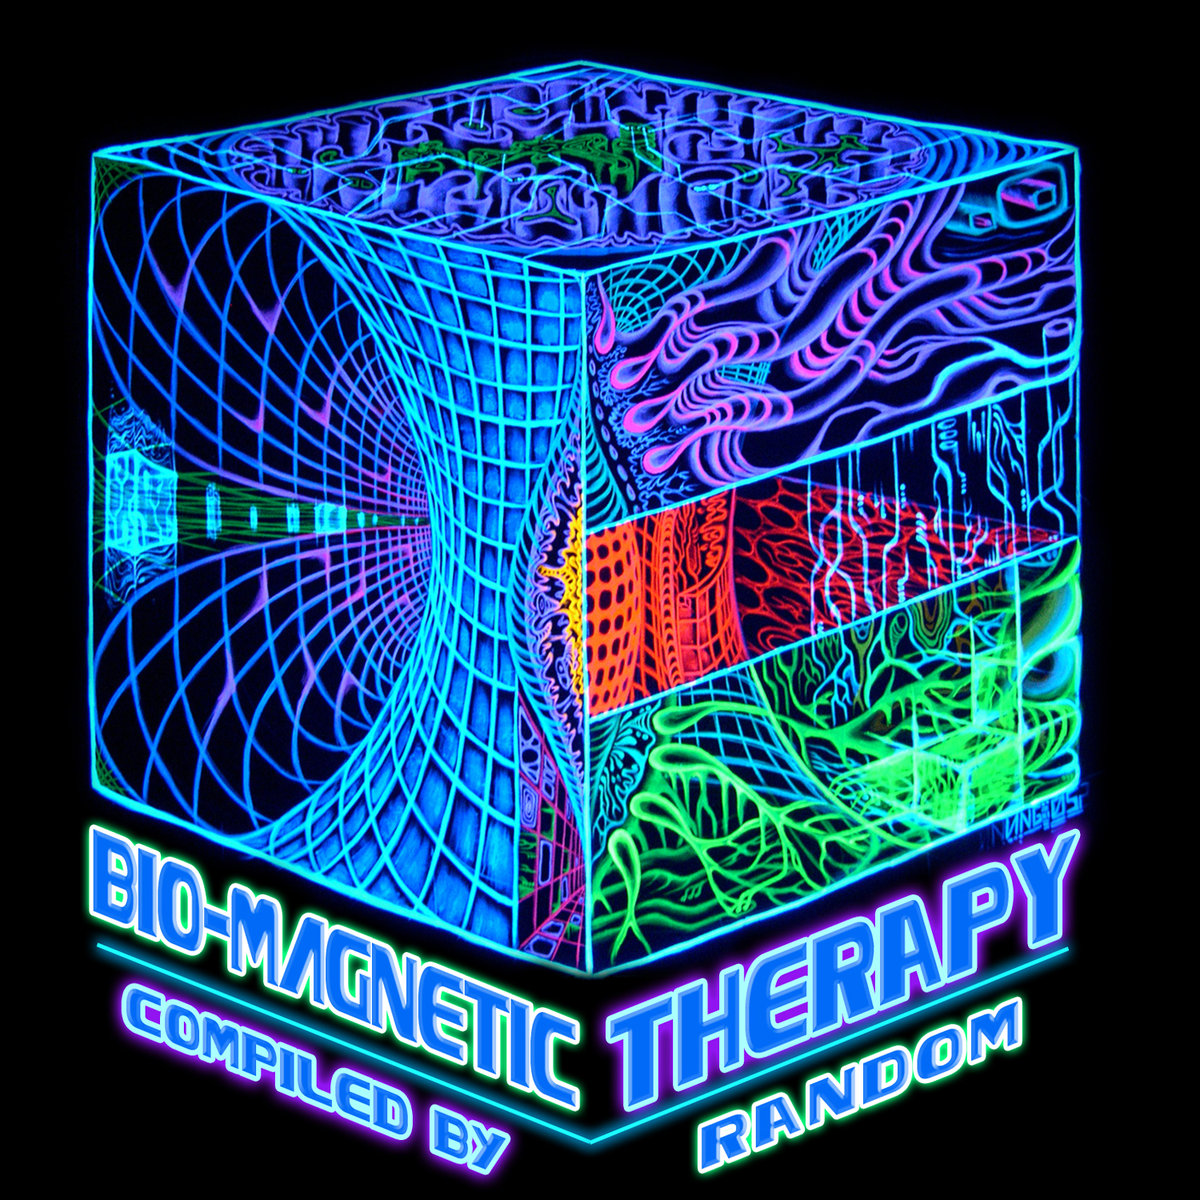 Delysid vs. Wicked Wires - Time Machine @ 'Various Artists - Bio-Magnetic Therapy (Compiled by Random)' album (electronic, goa)